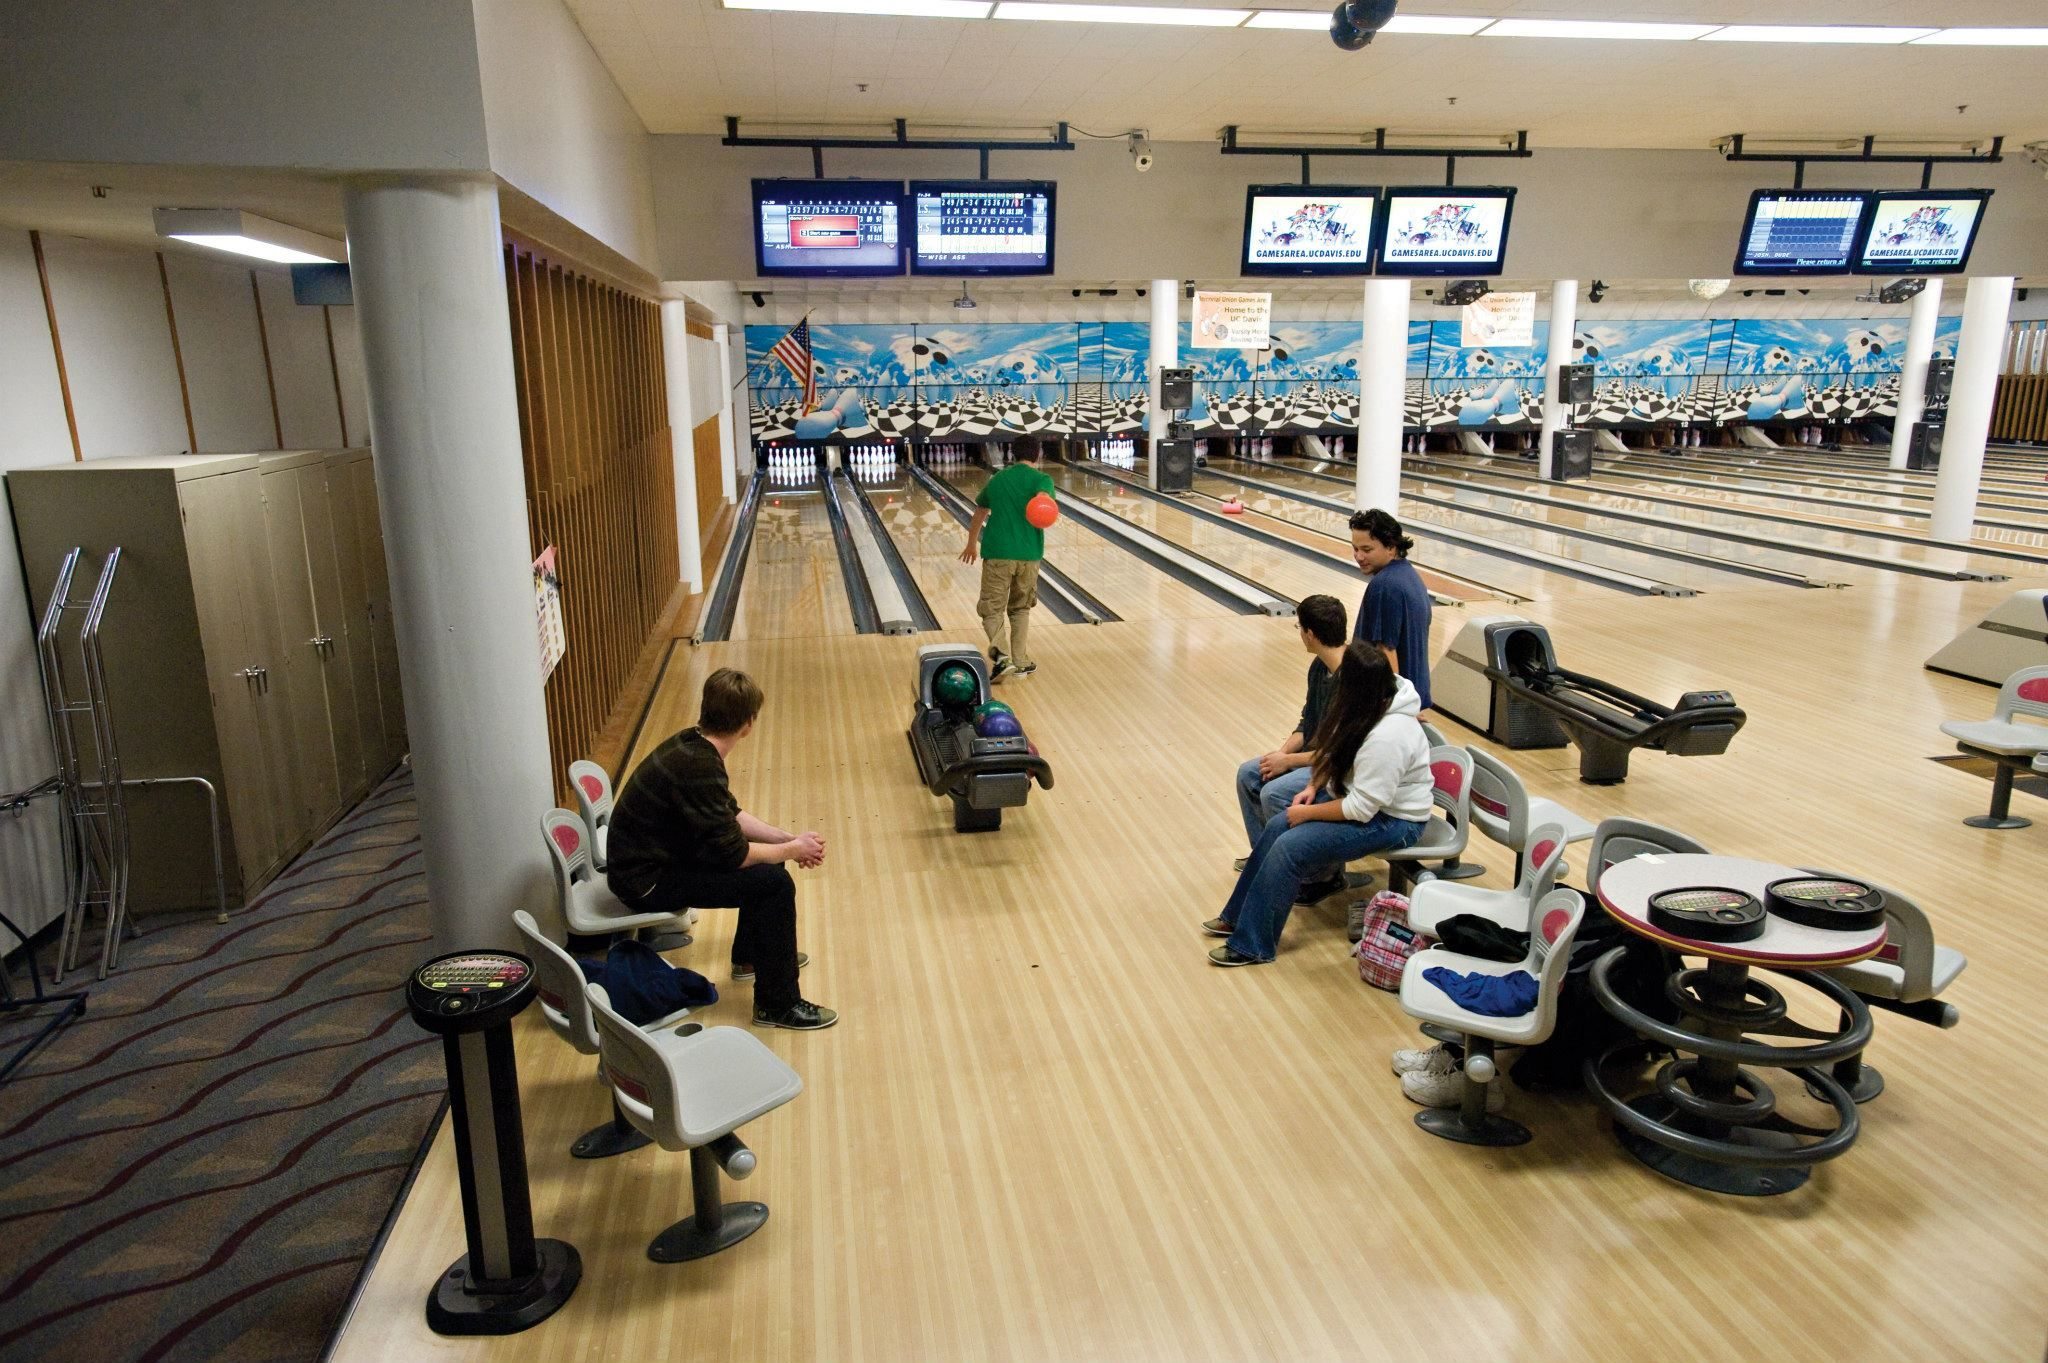 10 Bowling UC Davis is home to the only bowling alley in the city